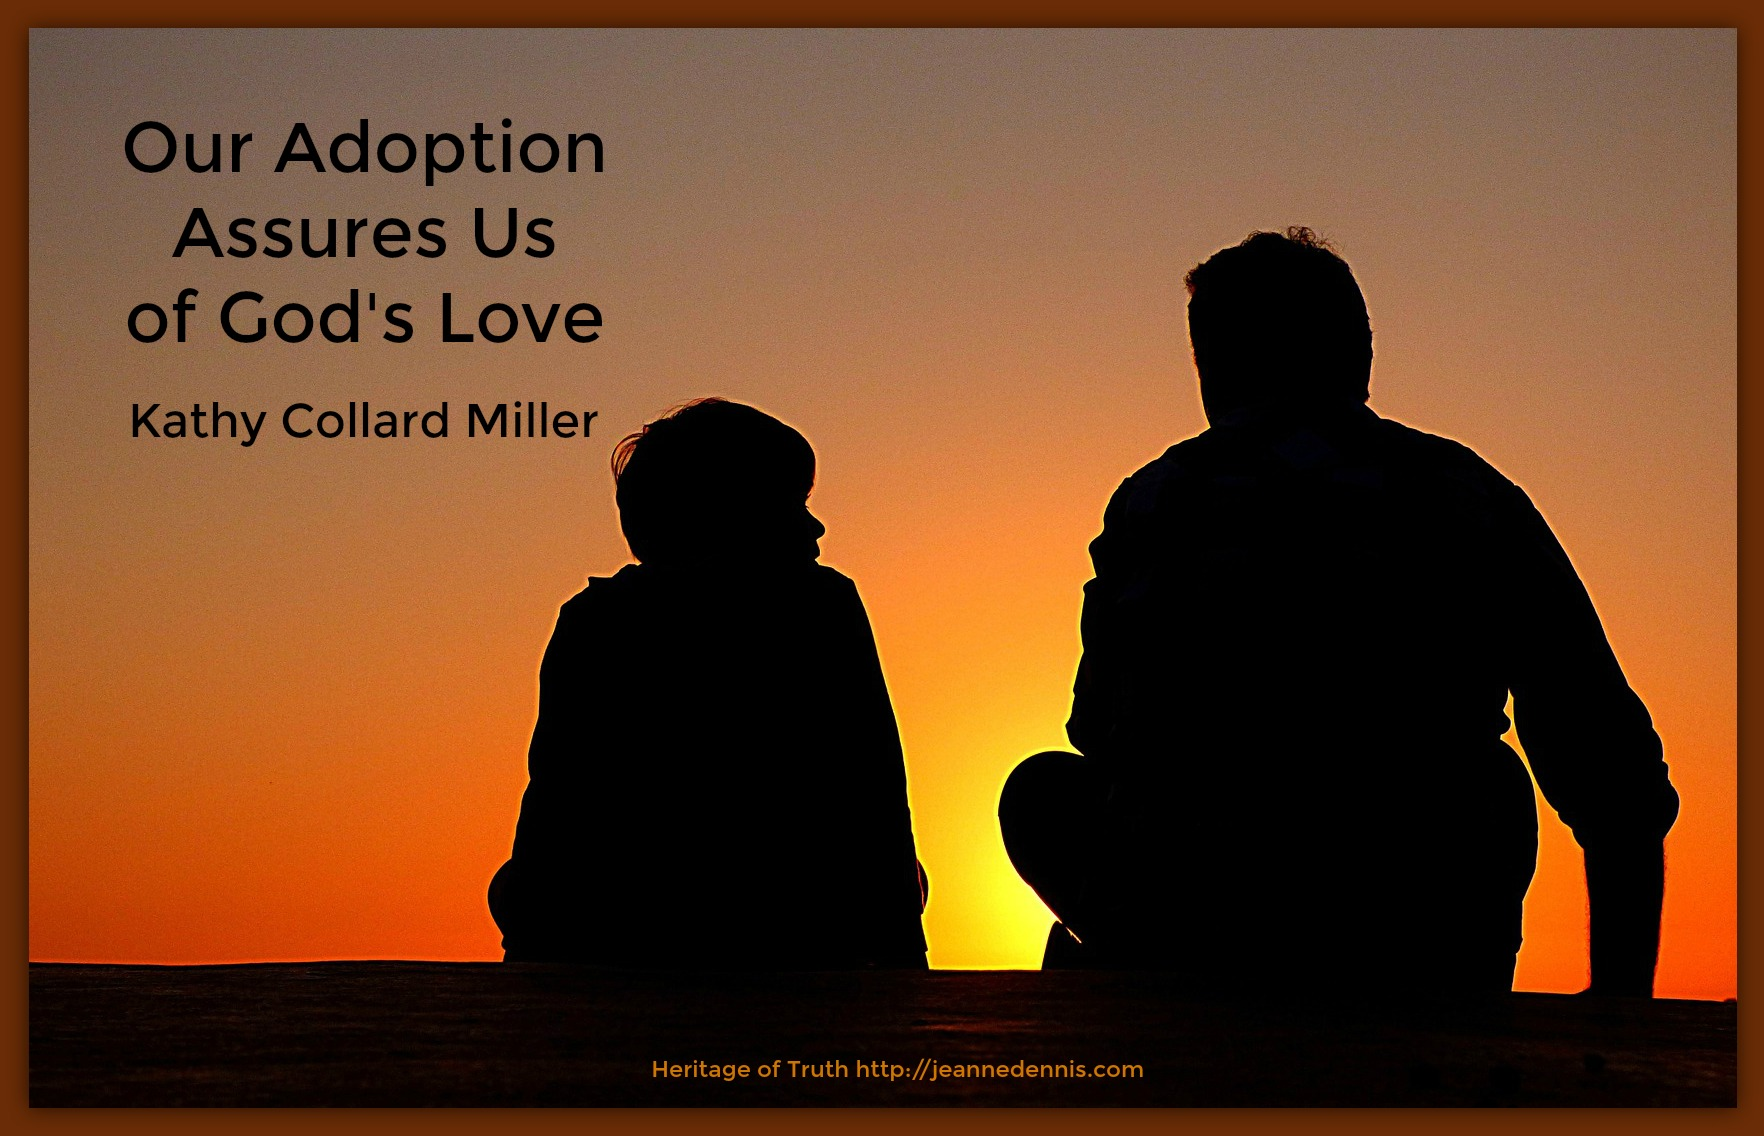 Our adoption assures us of God's love - father son silhouette